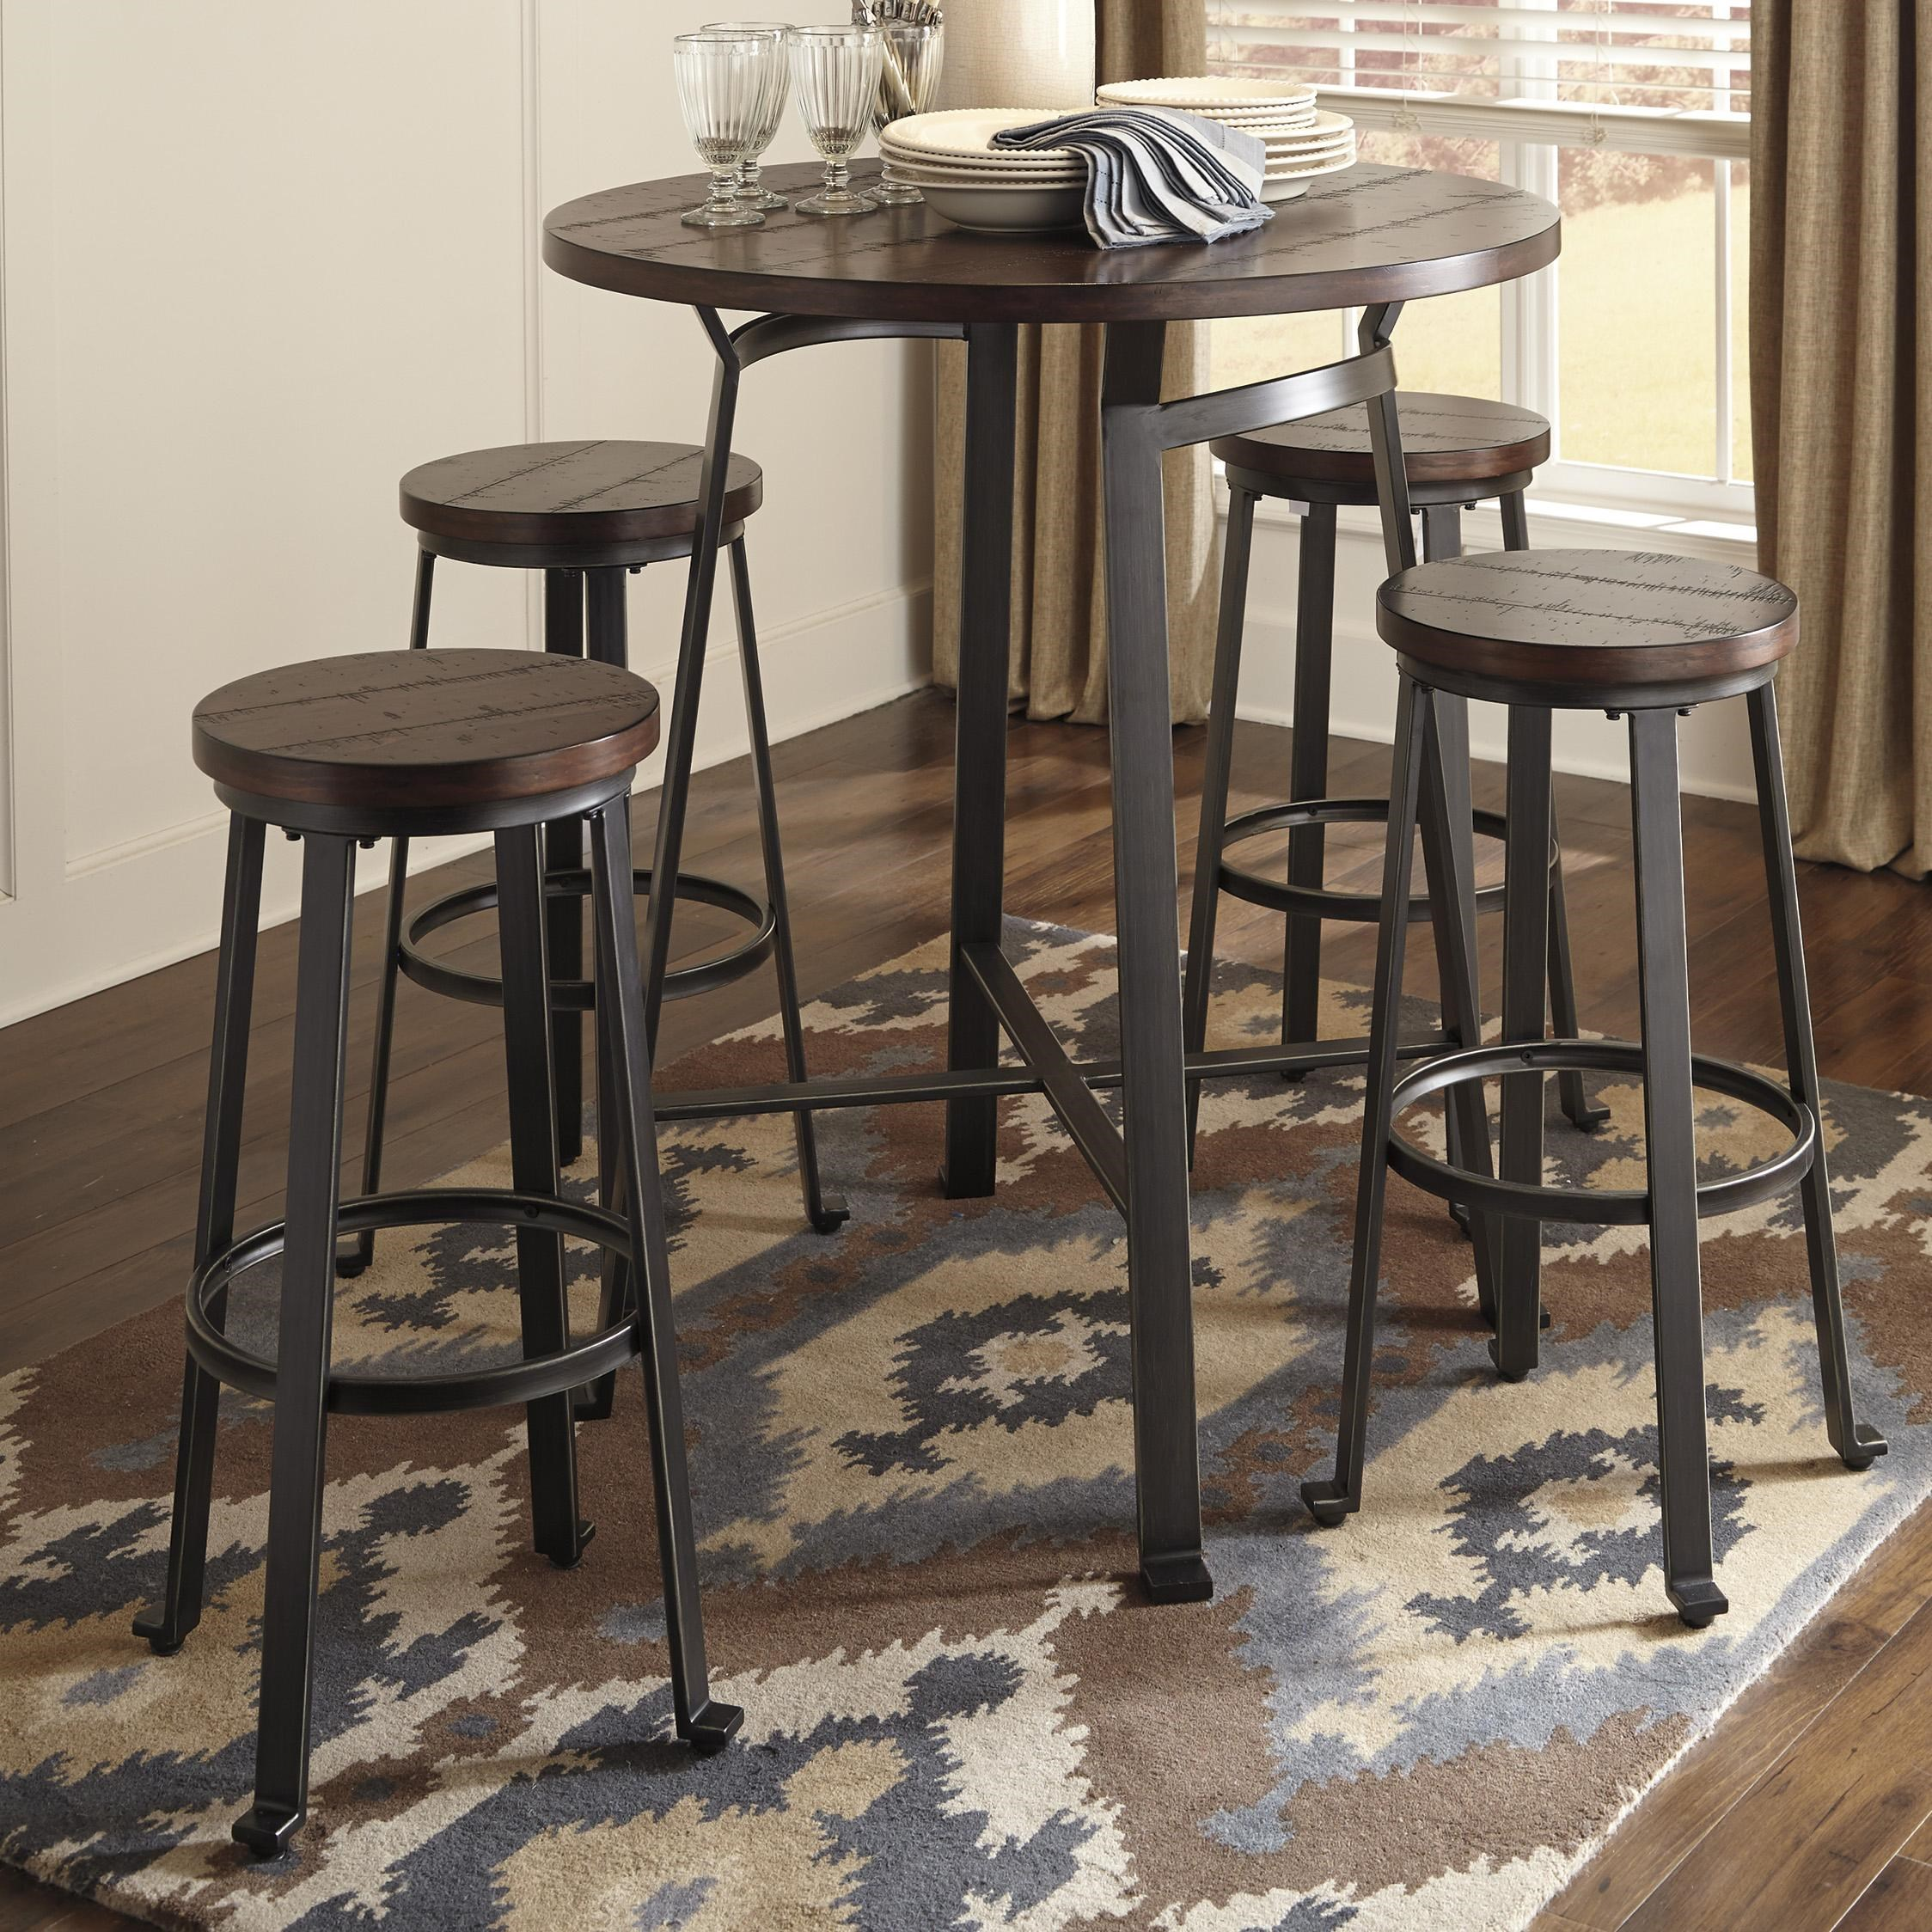 Signature Design by Ashley Challiman5-Piece Round Bar Table Set ...  sc 1 st  Value City Furniture & Signature Design by Ashley Challiman 5-Piece Round Bar Table Set ...